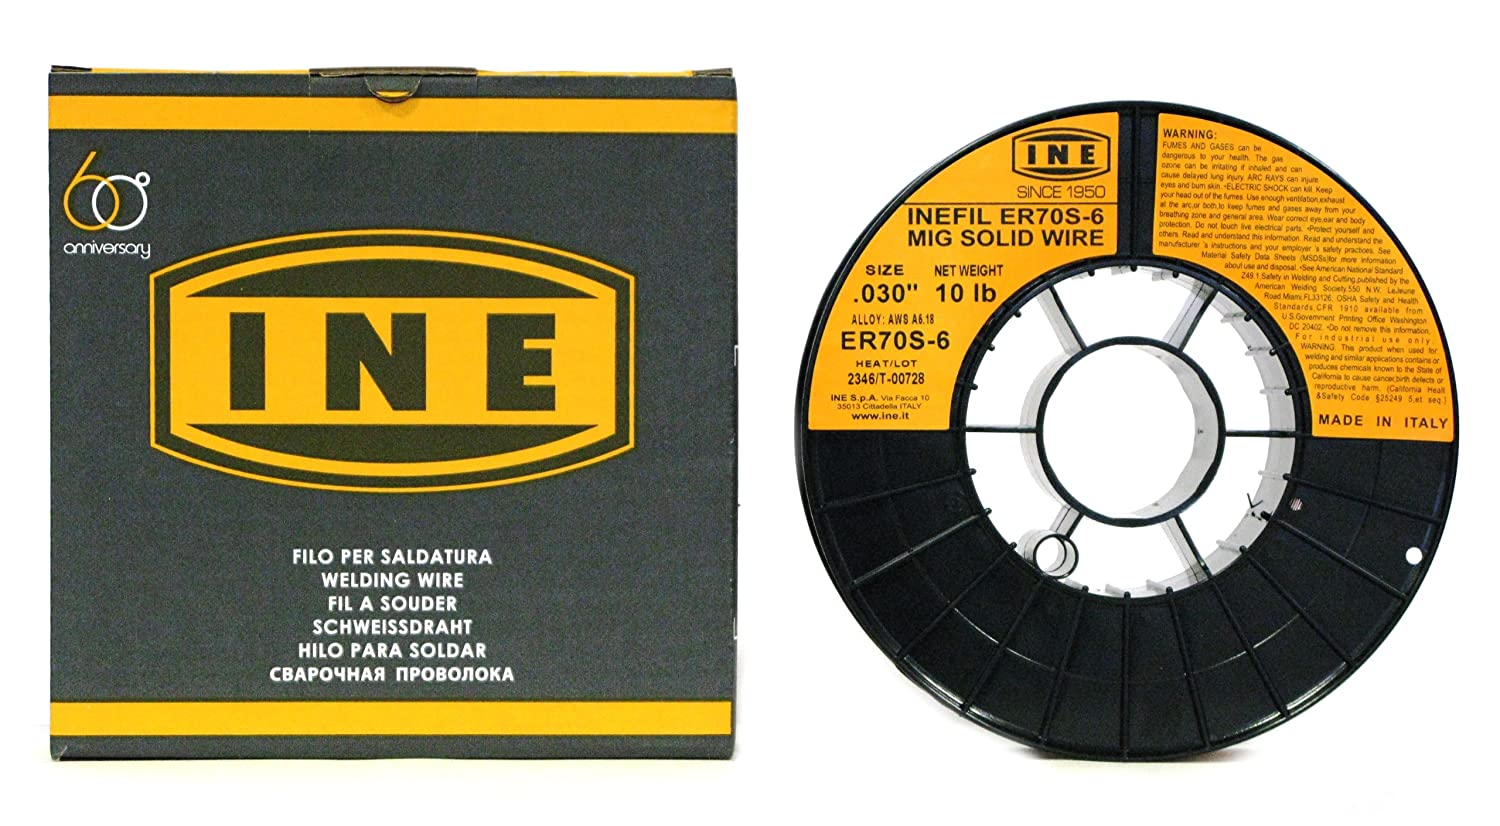 INEFIL ER70S-6 .030-Inch on 10-Pound Spool Carbon Steel Mig Solid Welding Wire (5-Pack) - - Amazon.com